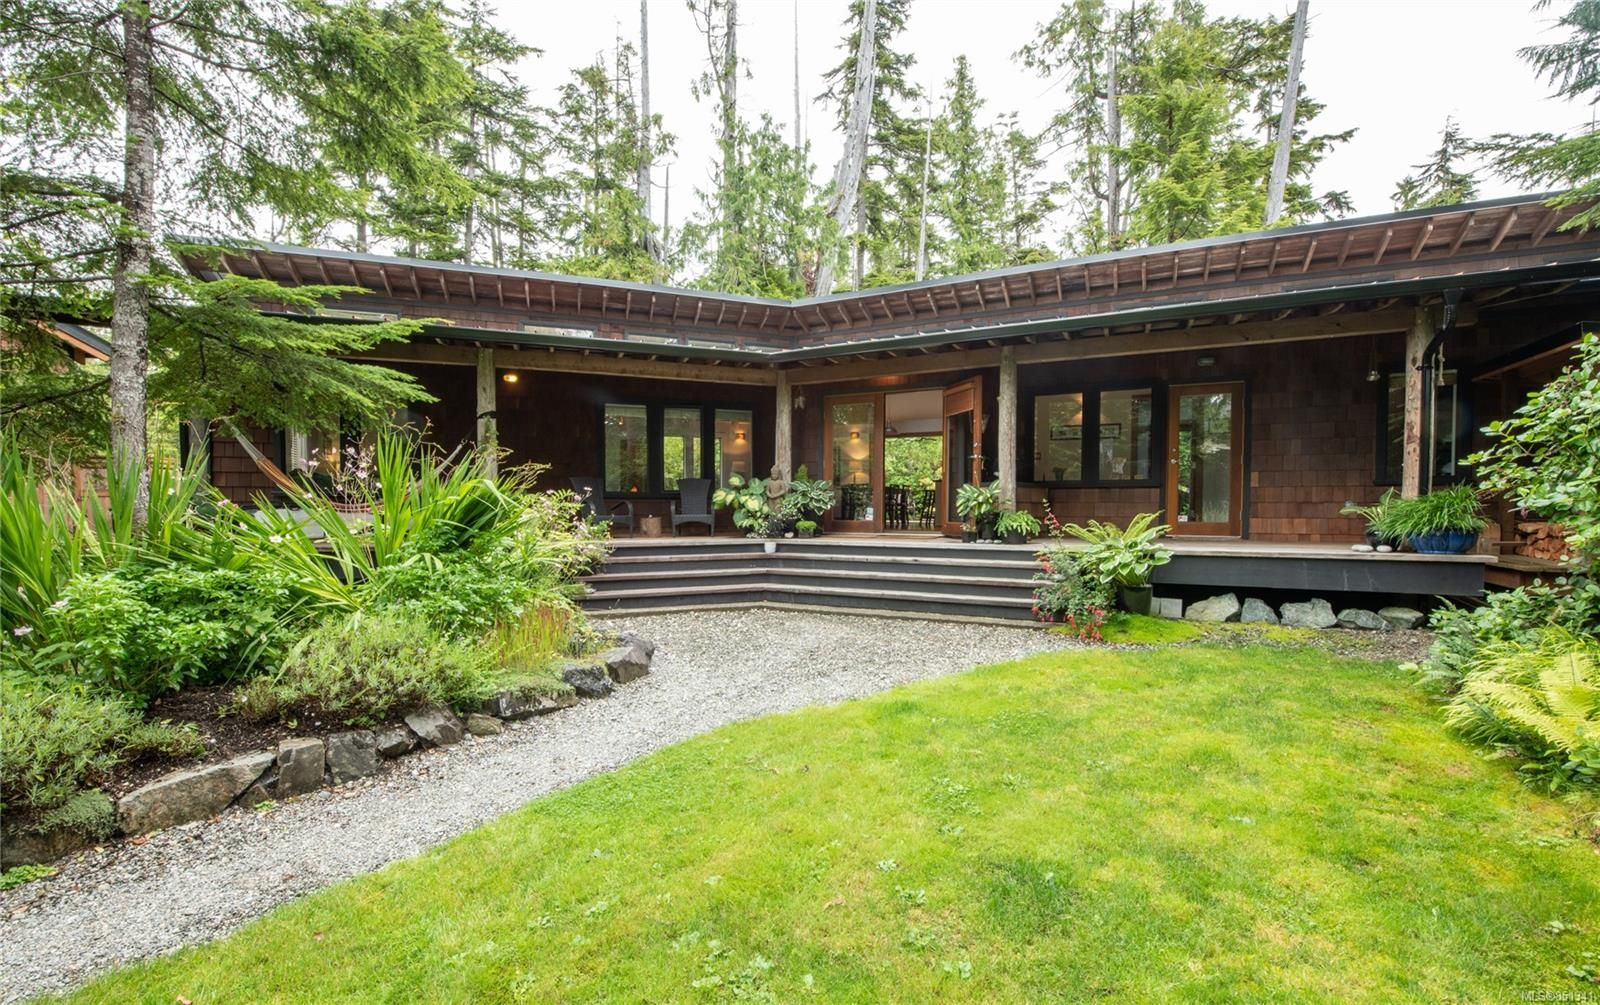 Main Photo: 1126 FELLOWSHIP Dr in : PA Tofino House for sale (Port Alberni)  : MLS®# 851341